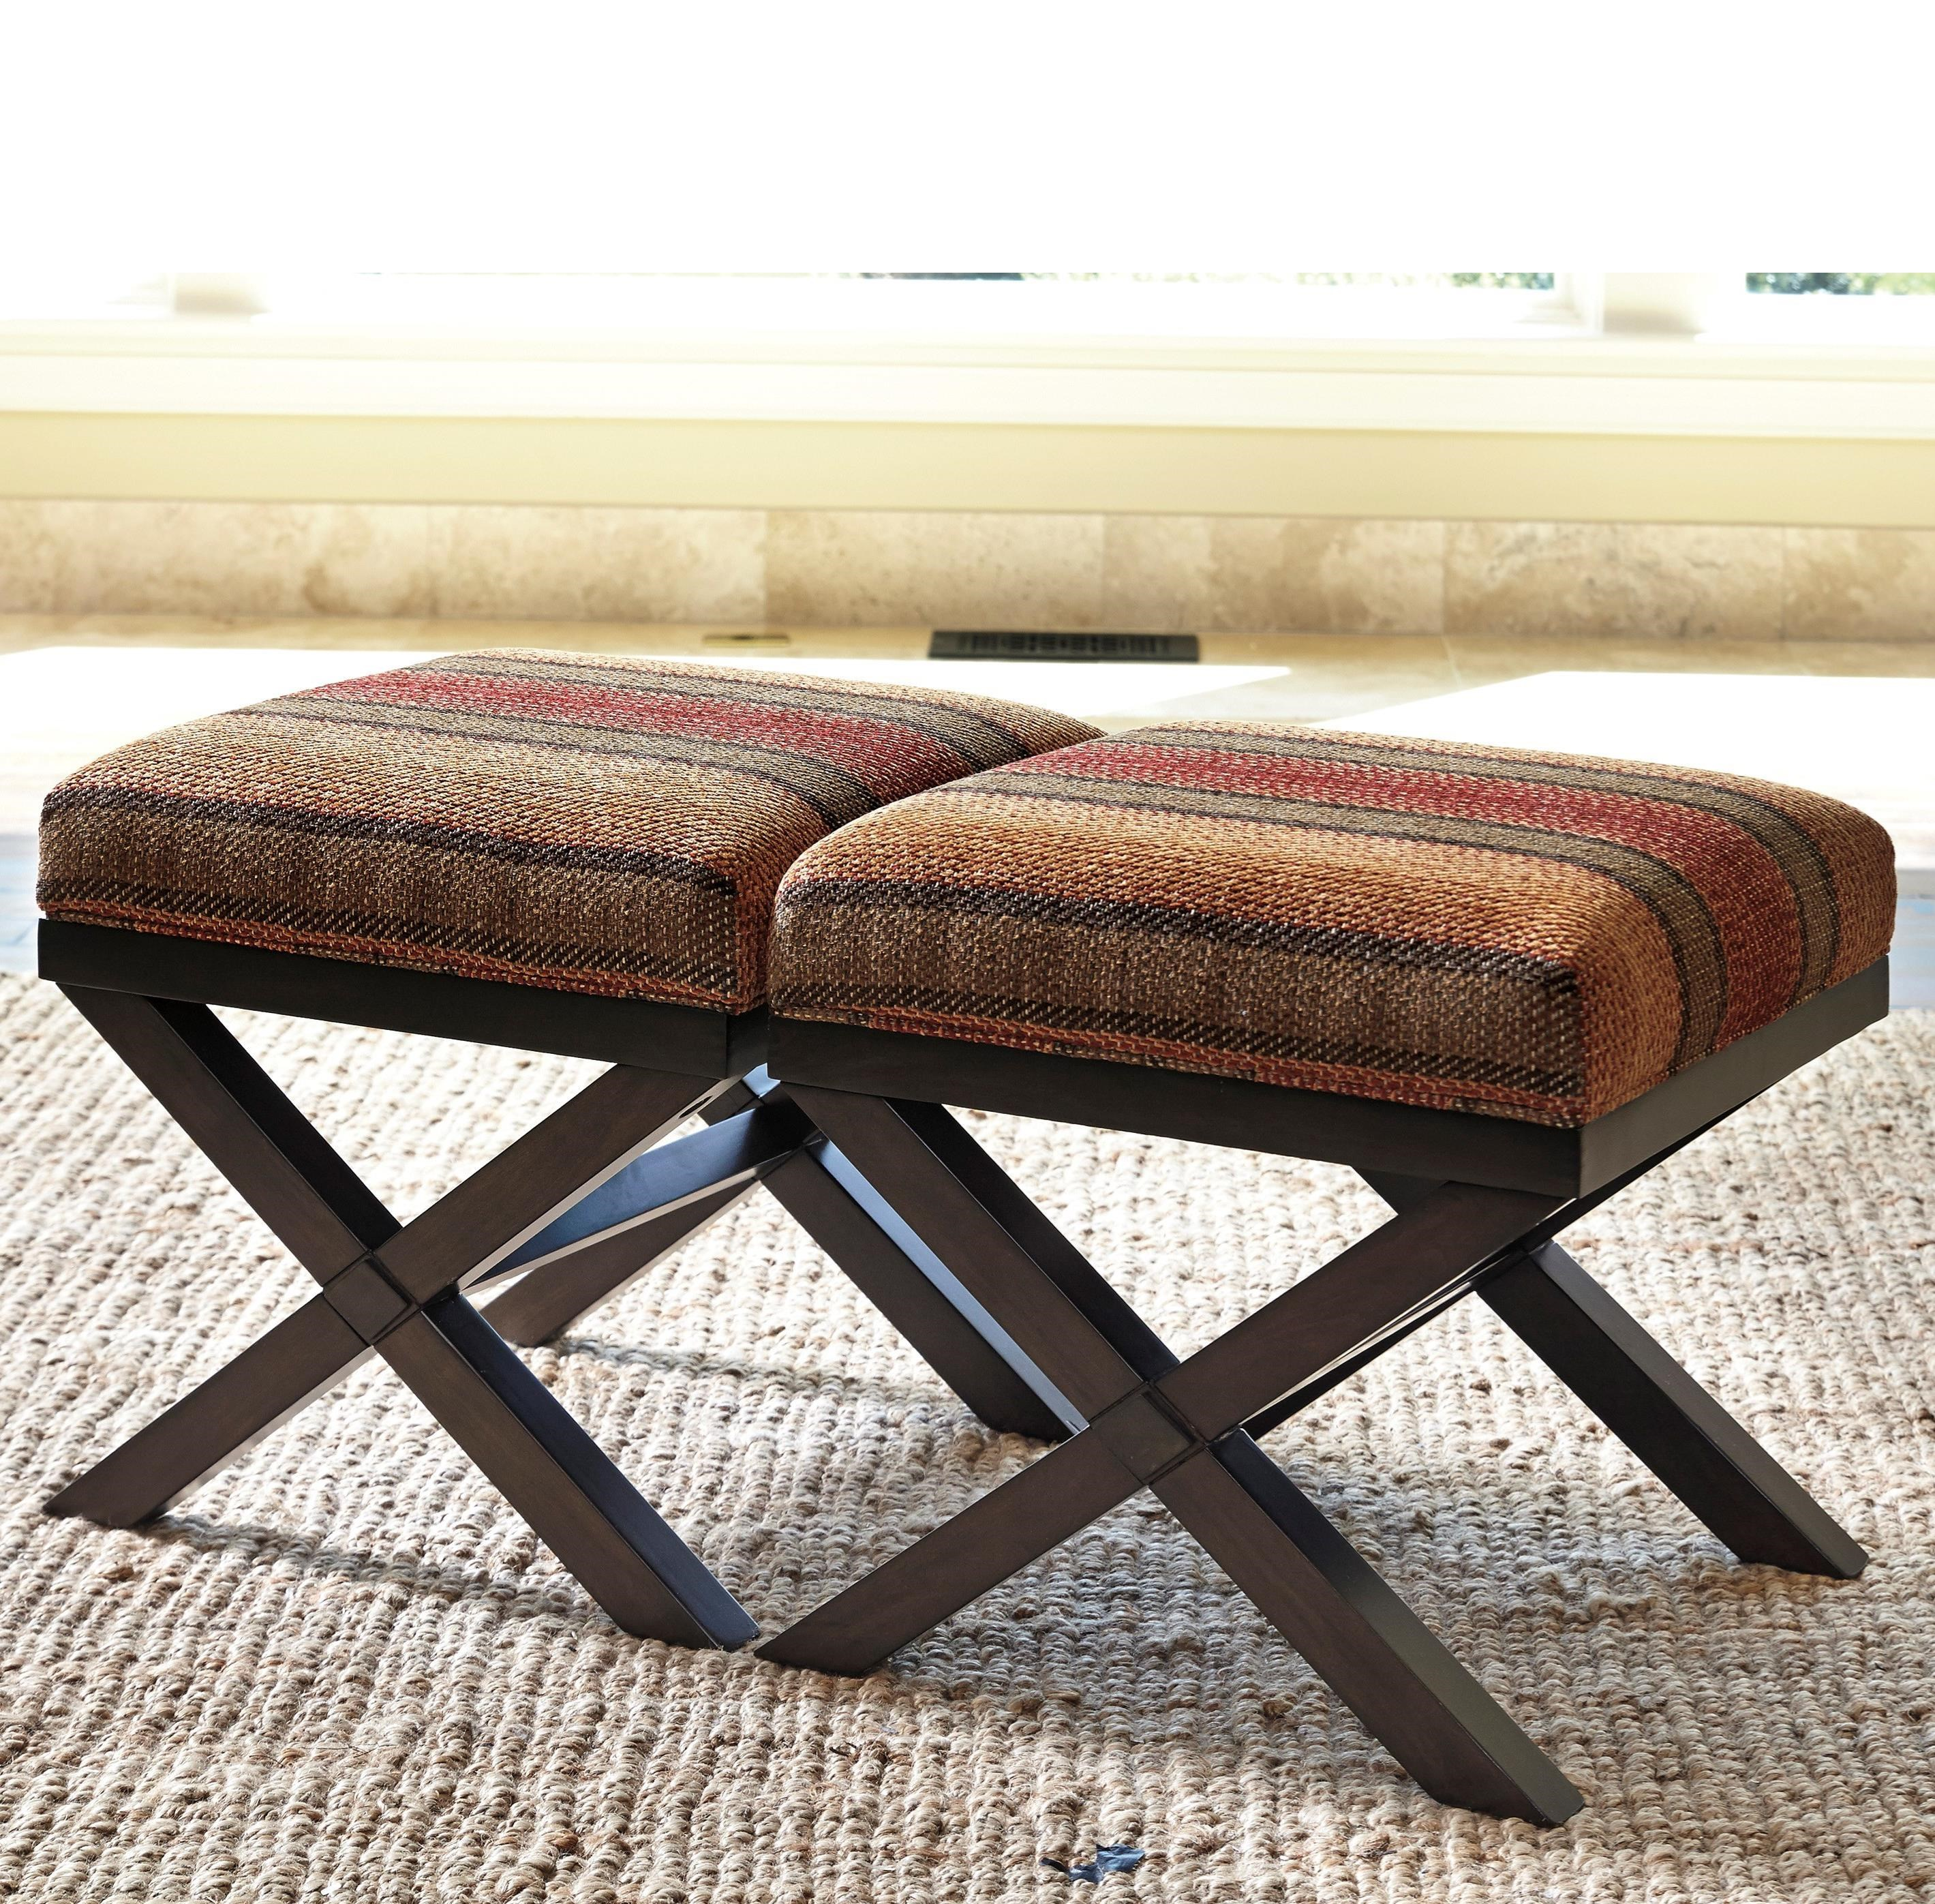 Millennium Fiera Set of 2 Accent Ottomans - Item Number: 4510113